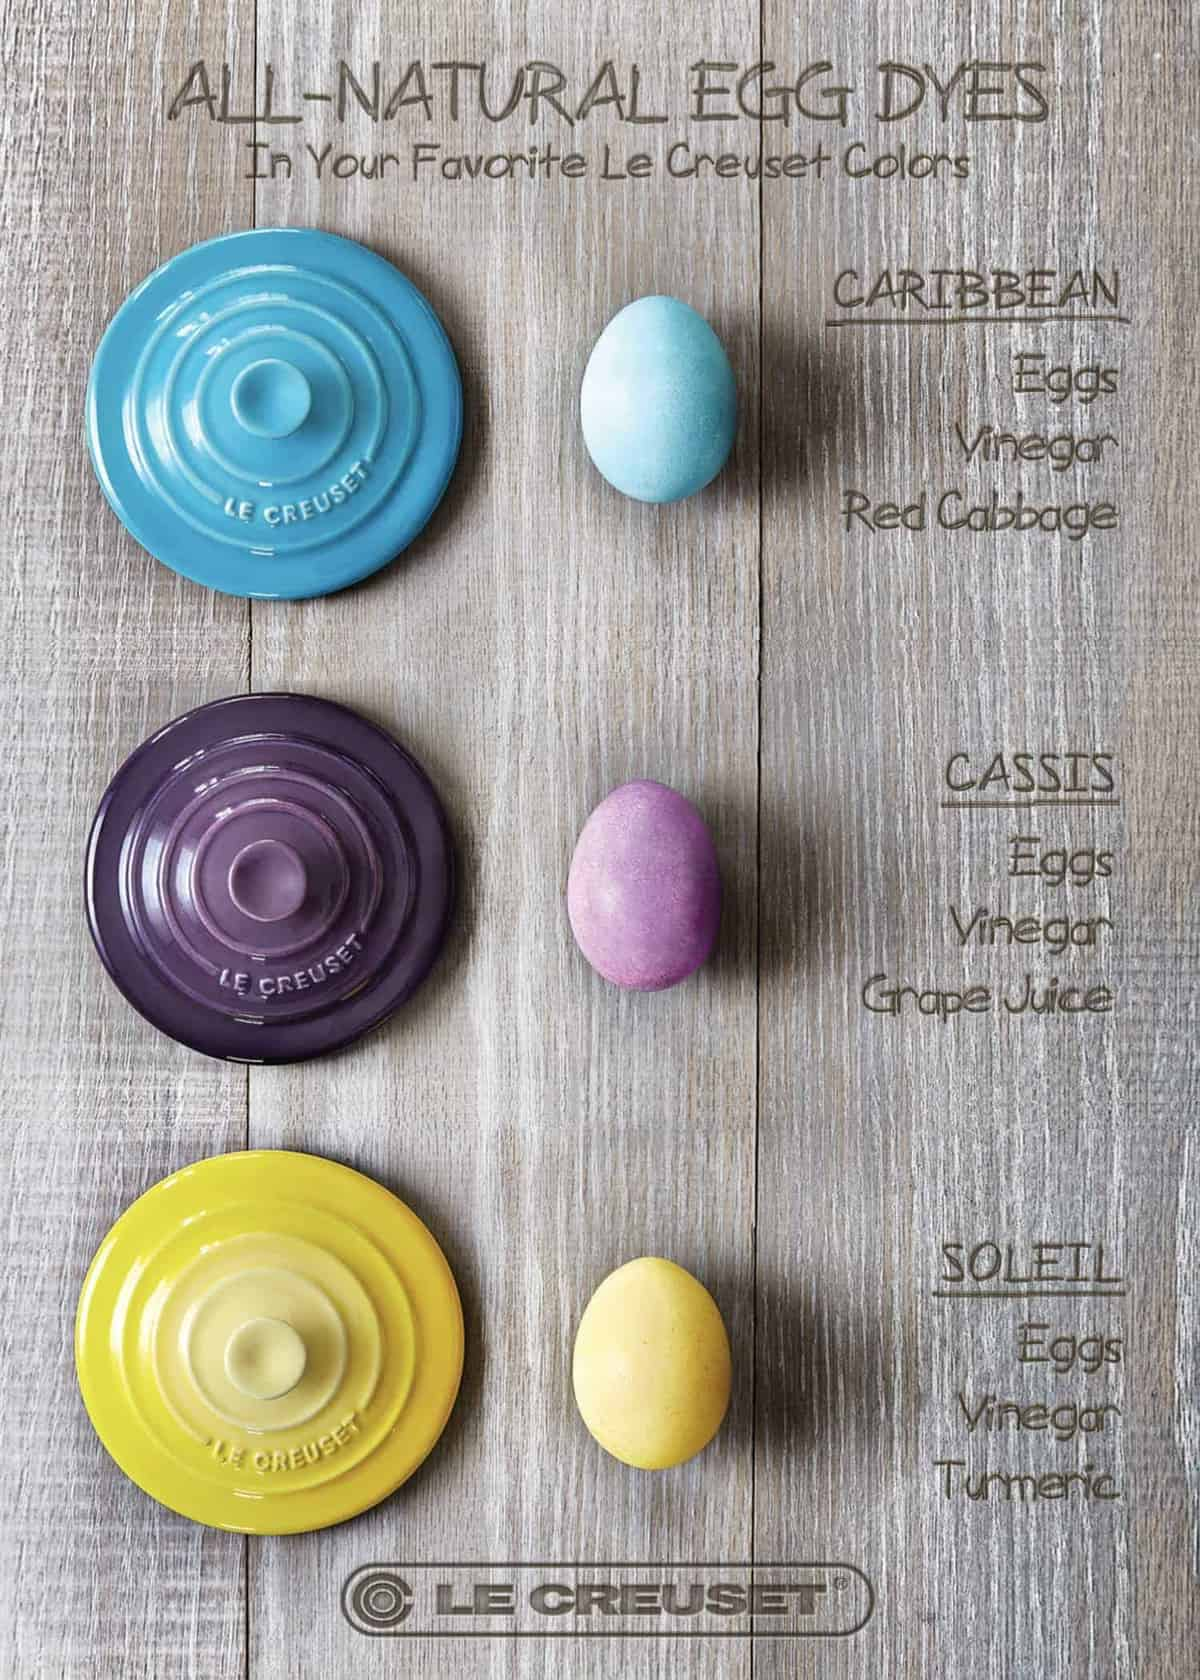 All-Natural Egg Dye and Le Creuset Giveaway